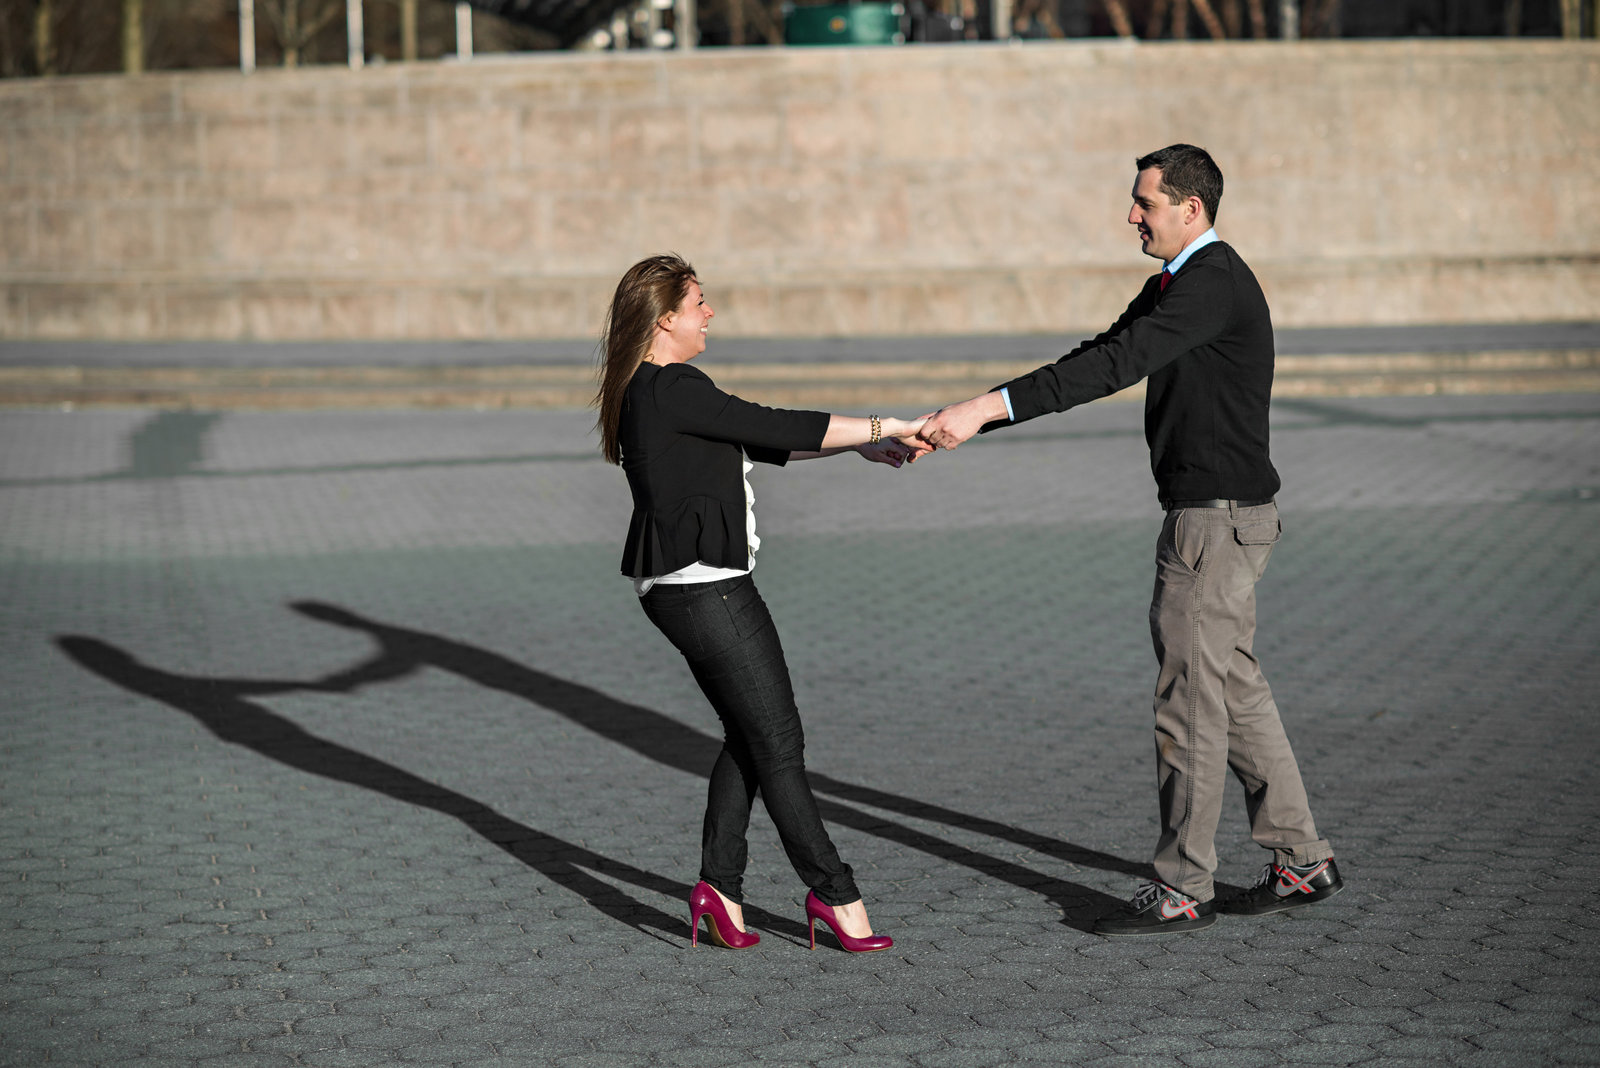 A man and woman dance in the park in downtown NYC.